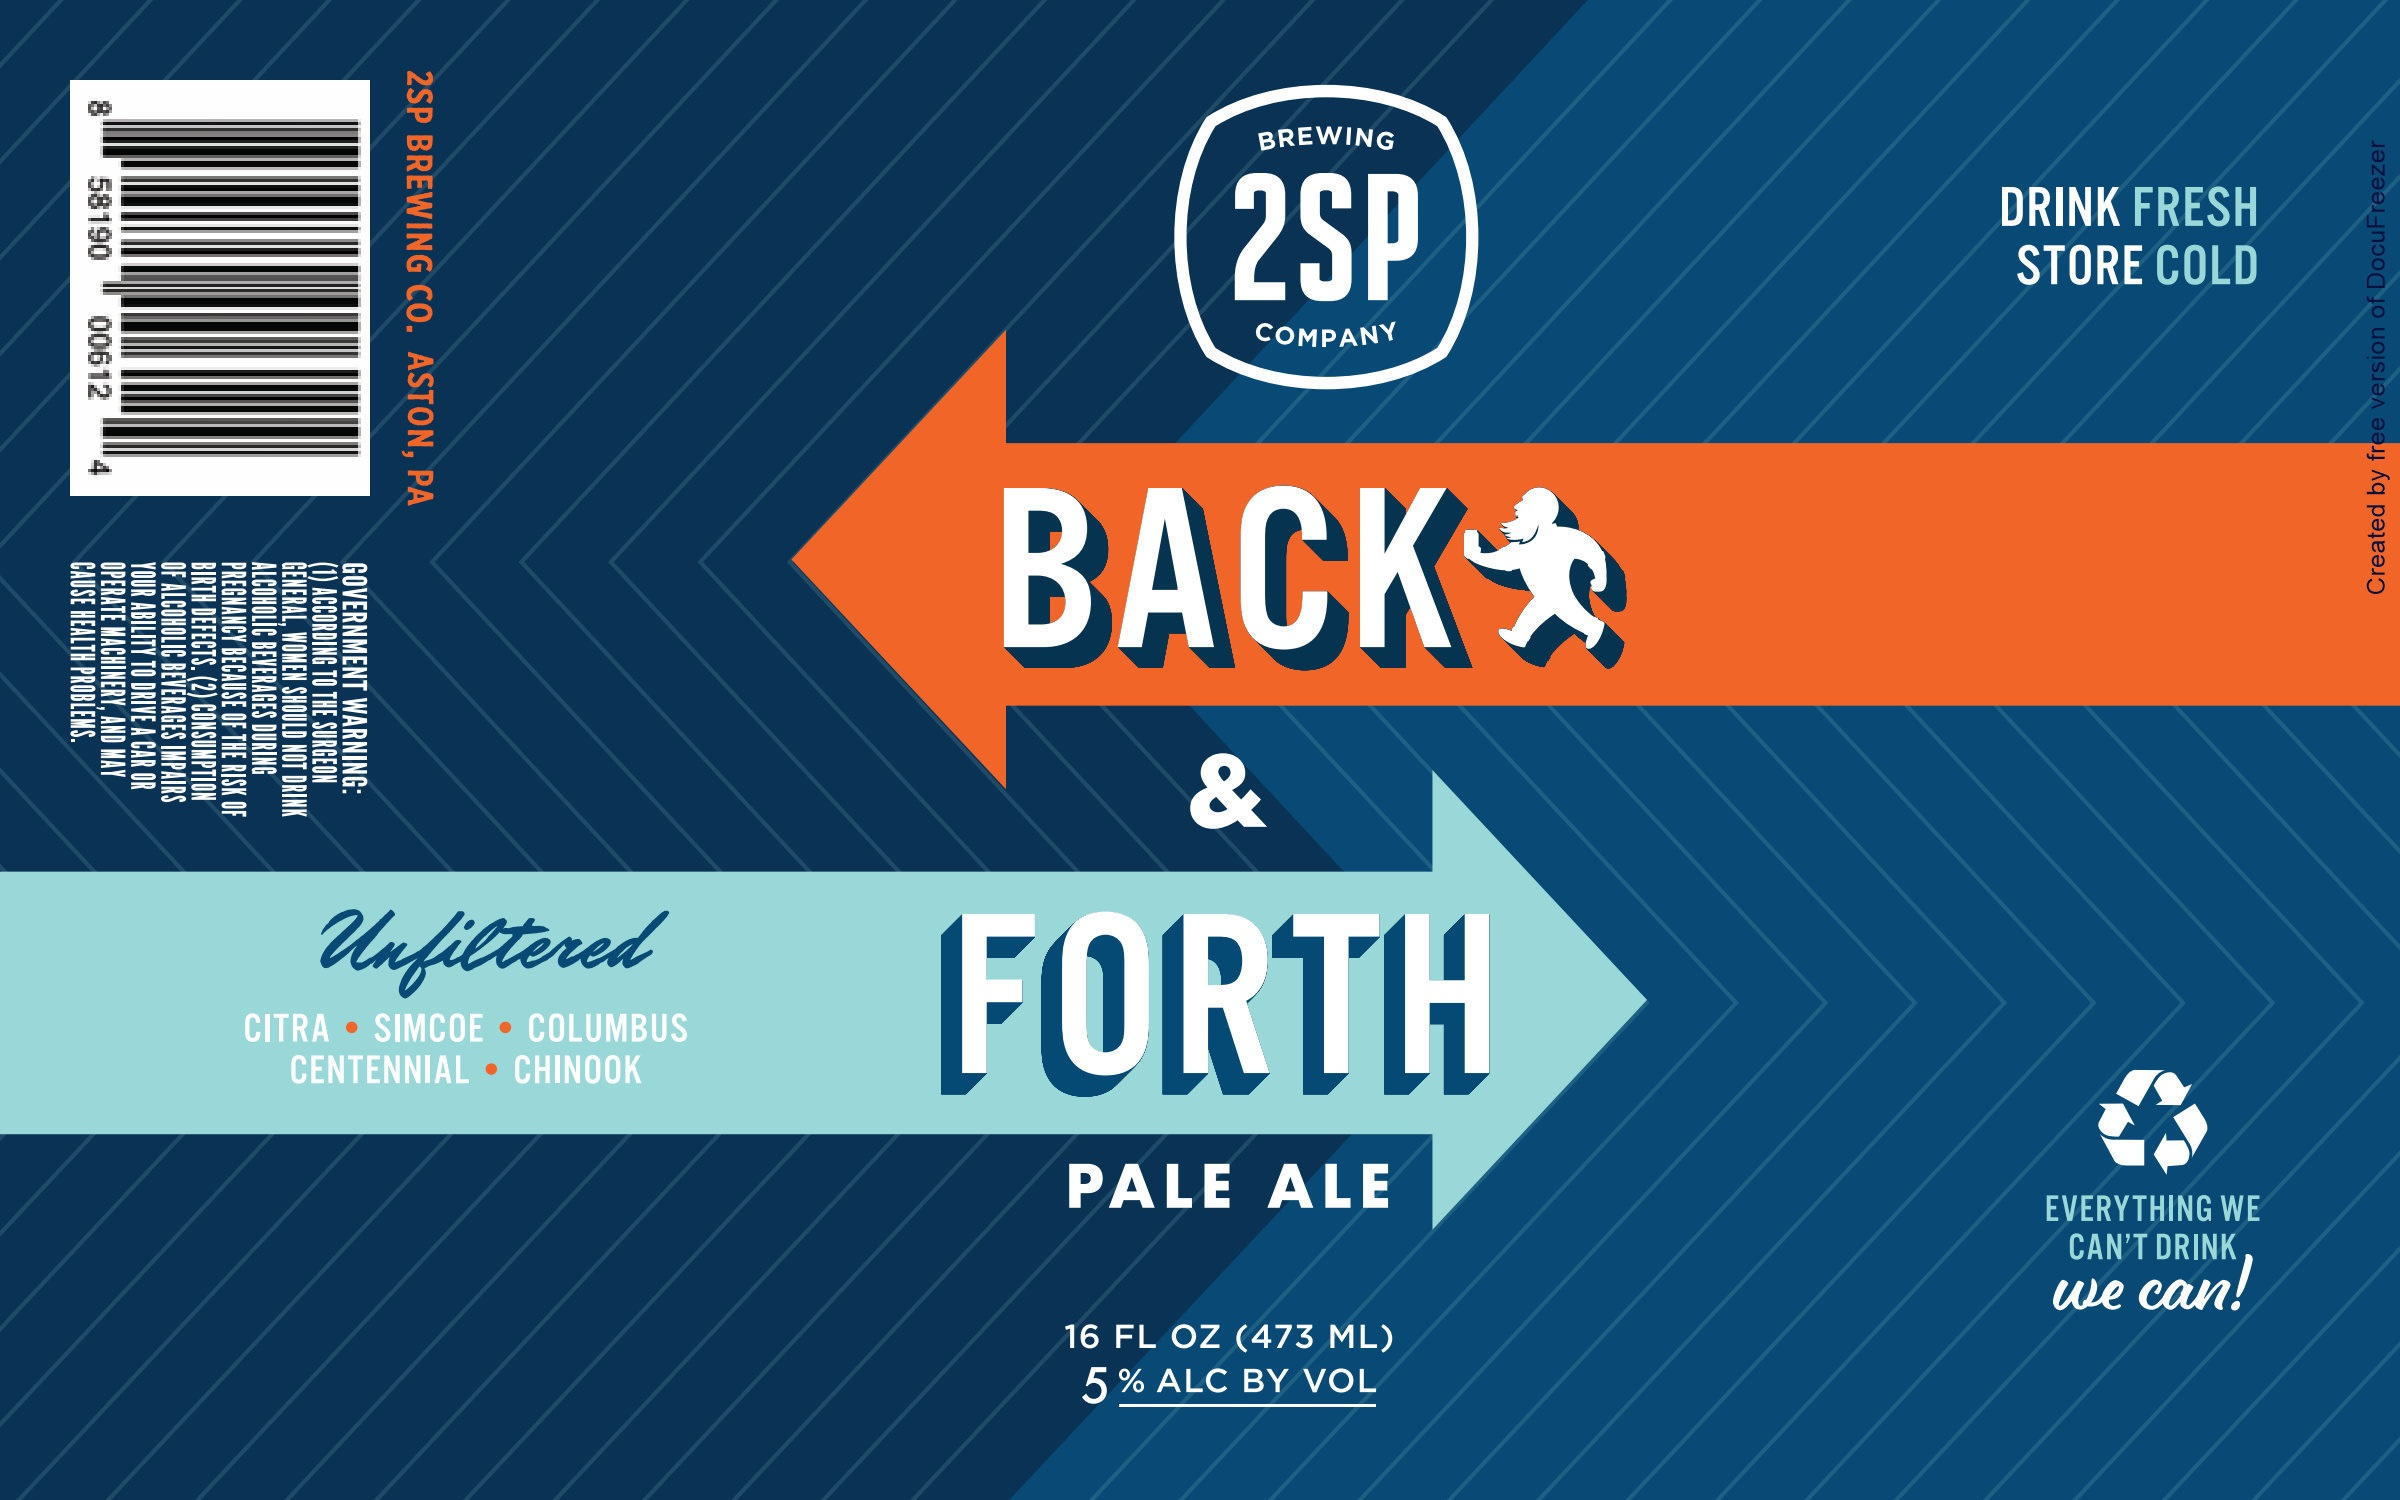 Back and Forth Pale Ale from 2SP Brewing